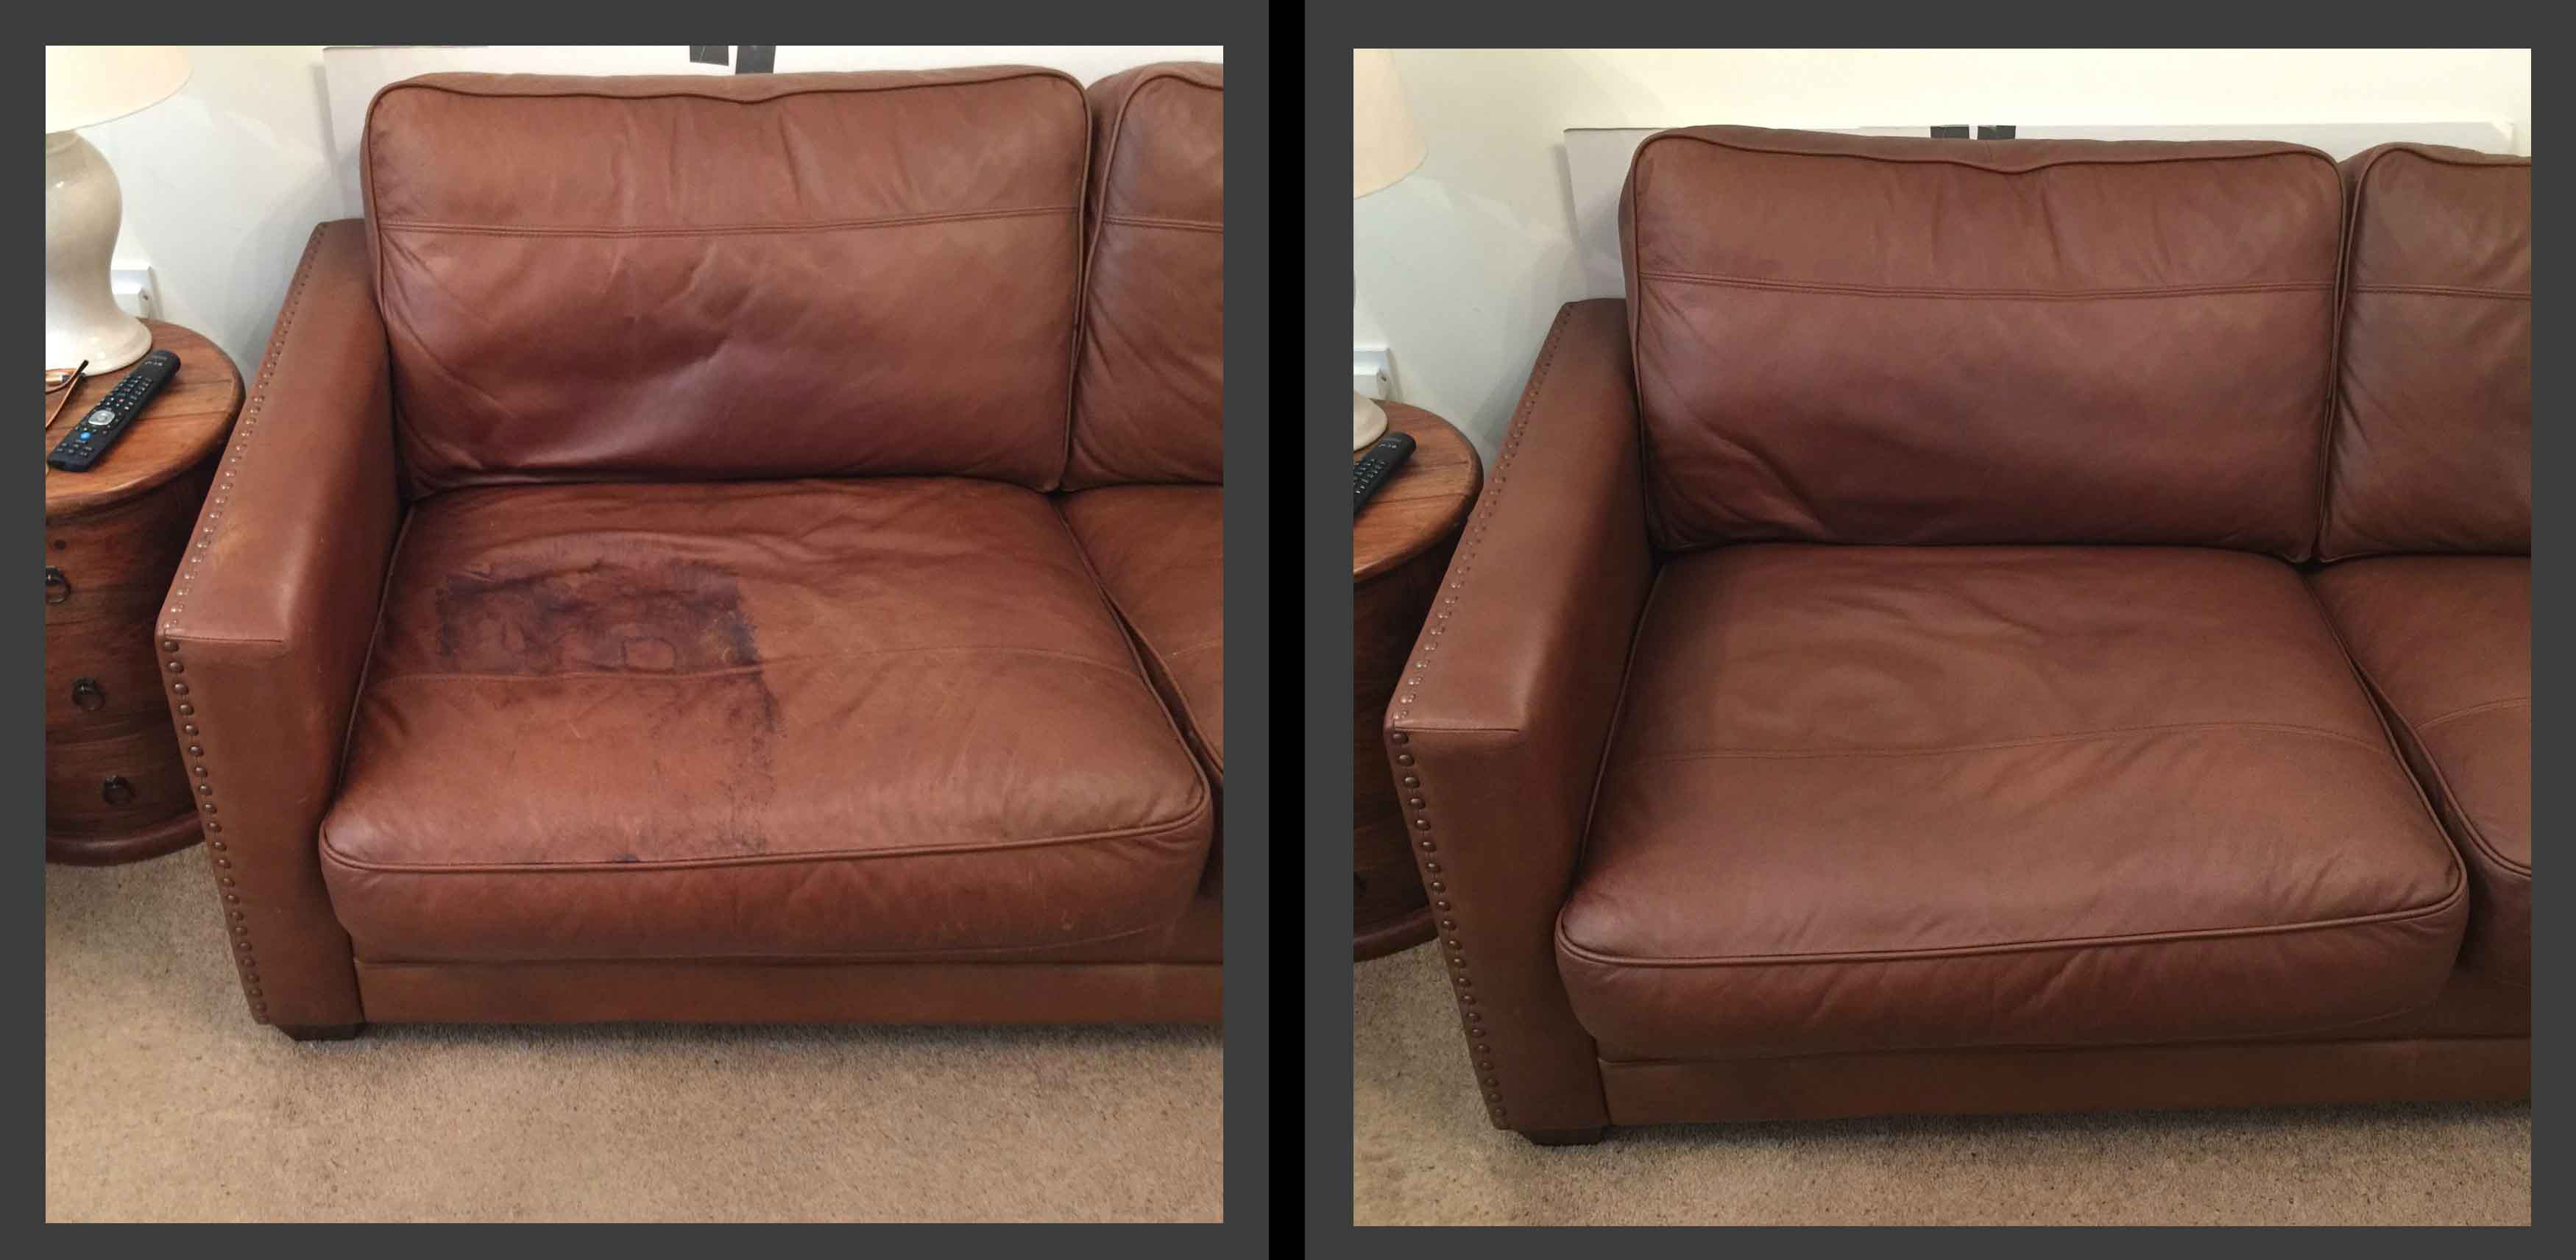 how to repair a leather sofa from cat scratches bed futon cover 3 simple ways on furniture